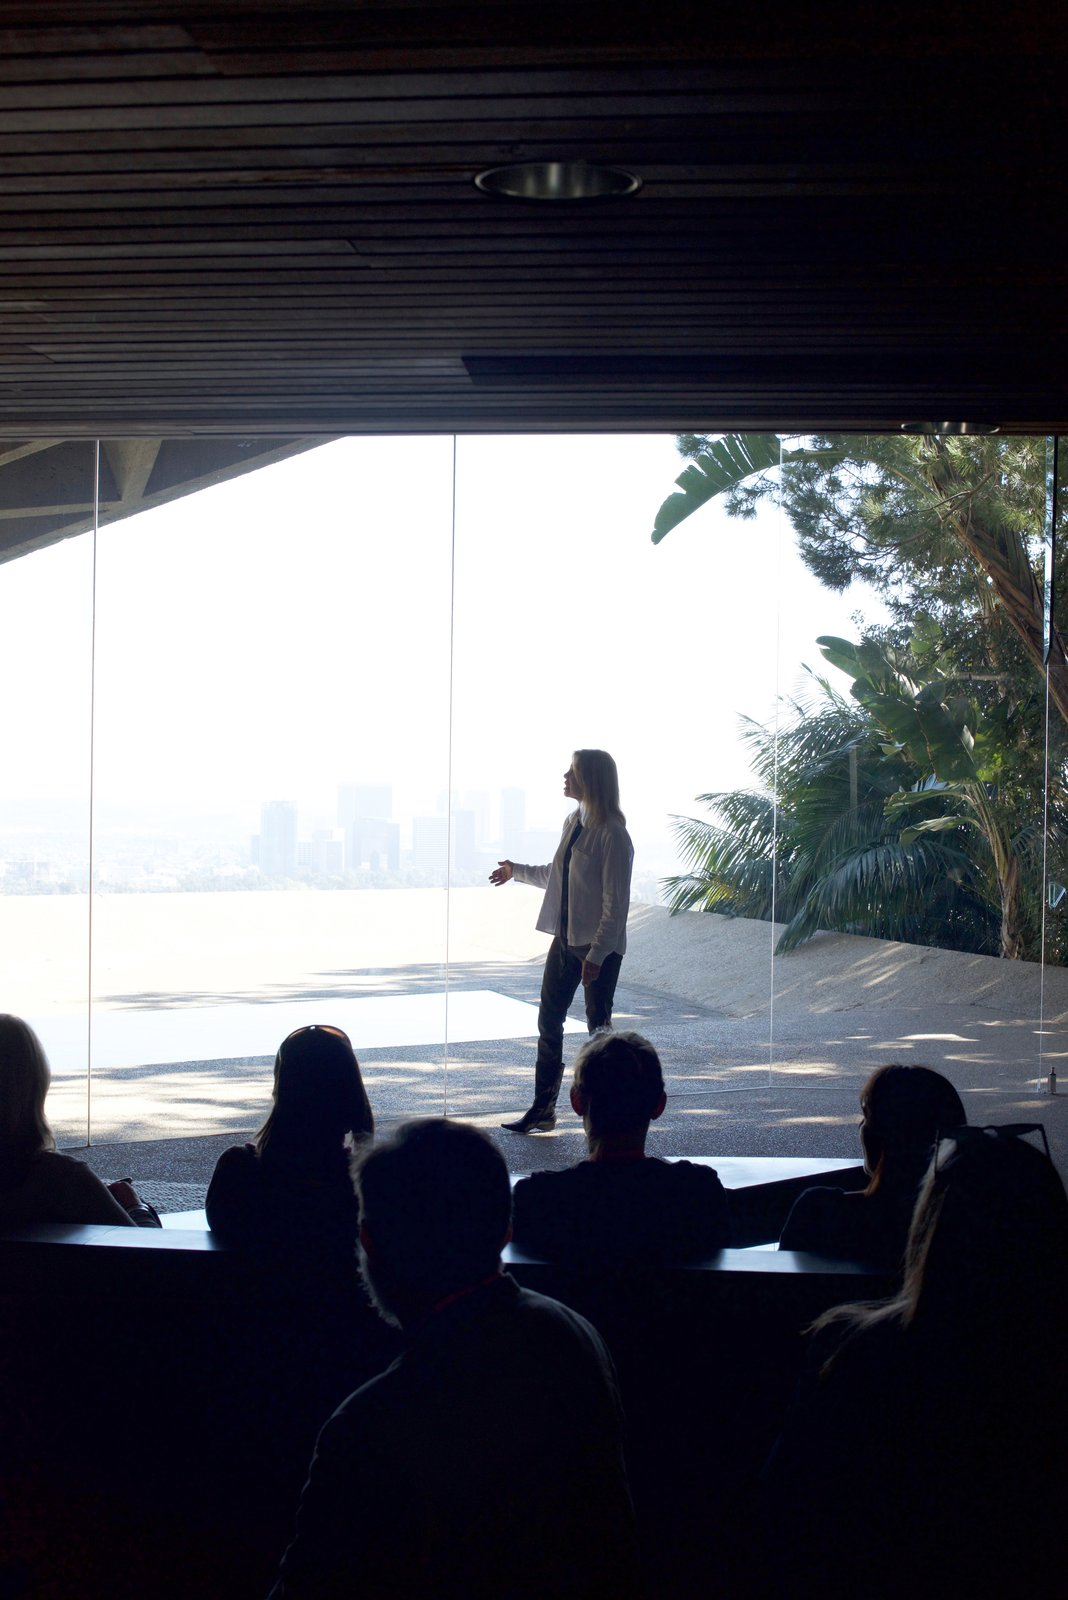 James Goldstein's associate shared with the touring group the story of the house while standing in front of the pool.  Behind the Scenes at John Lautner's Sheats-Goldstein Residence by Paige Alexus